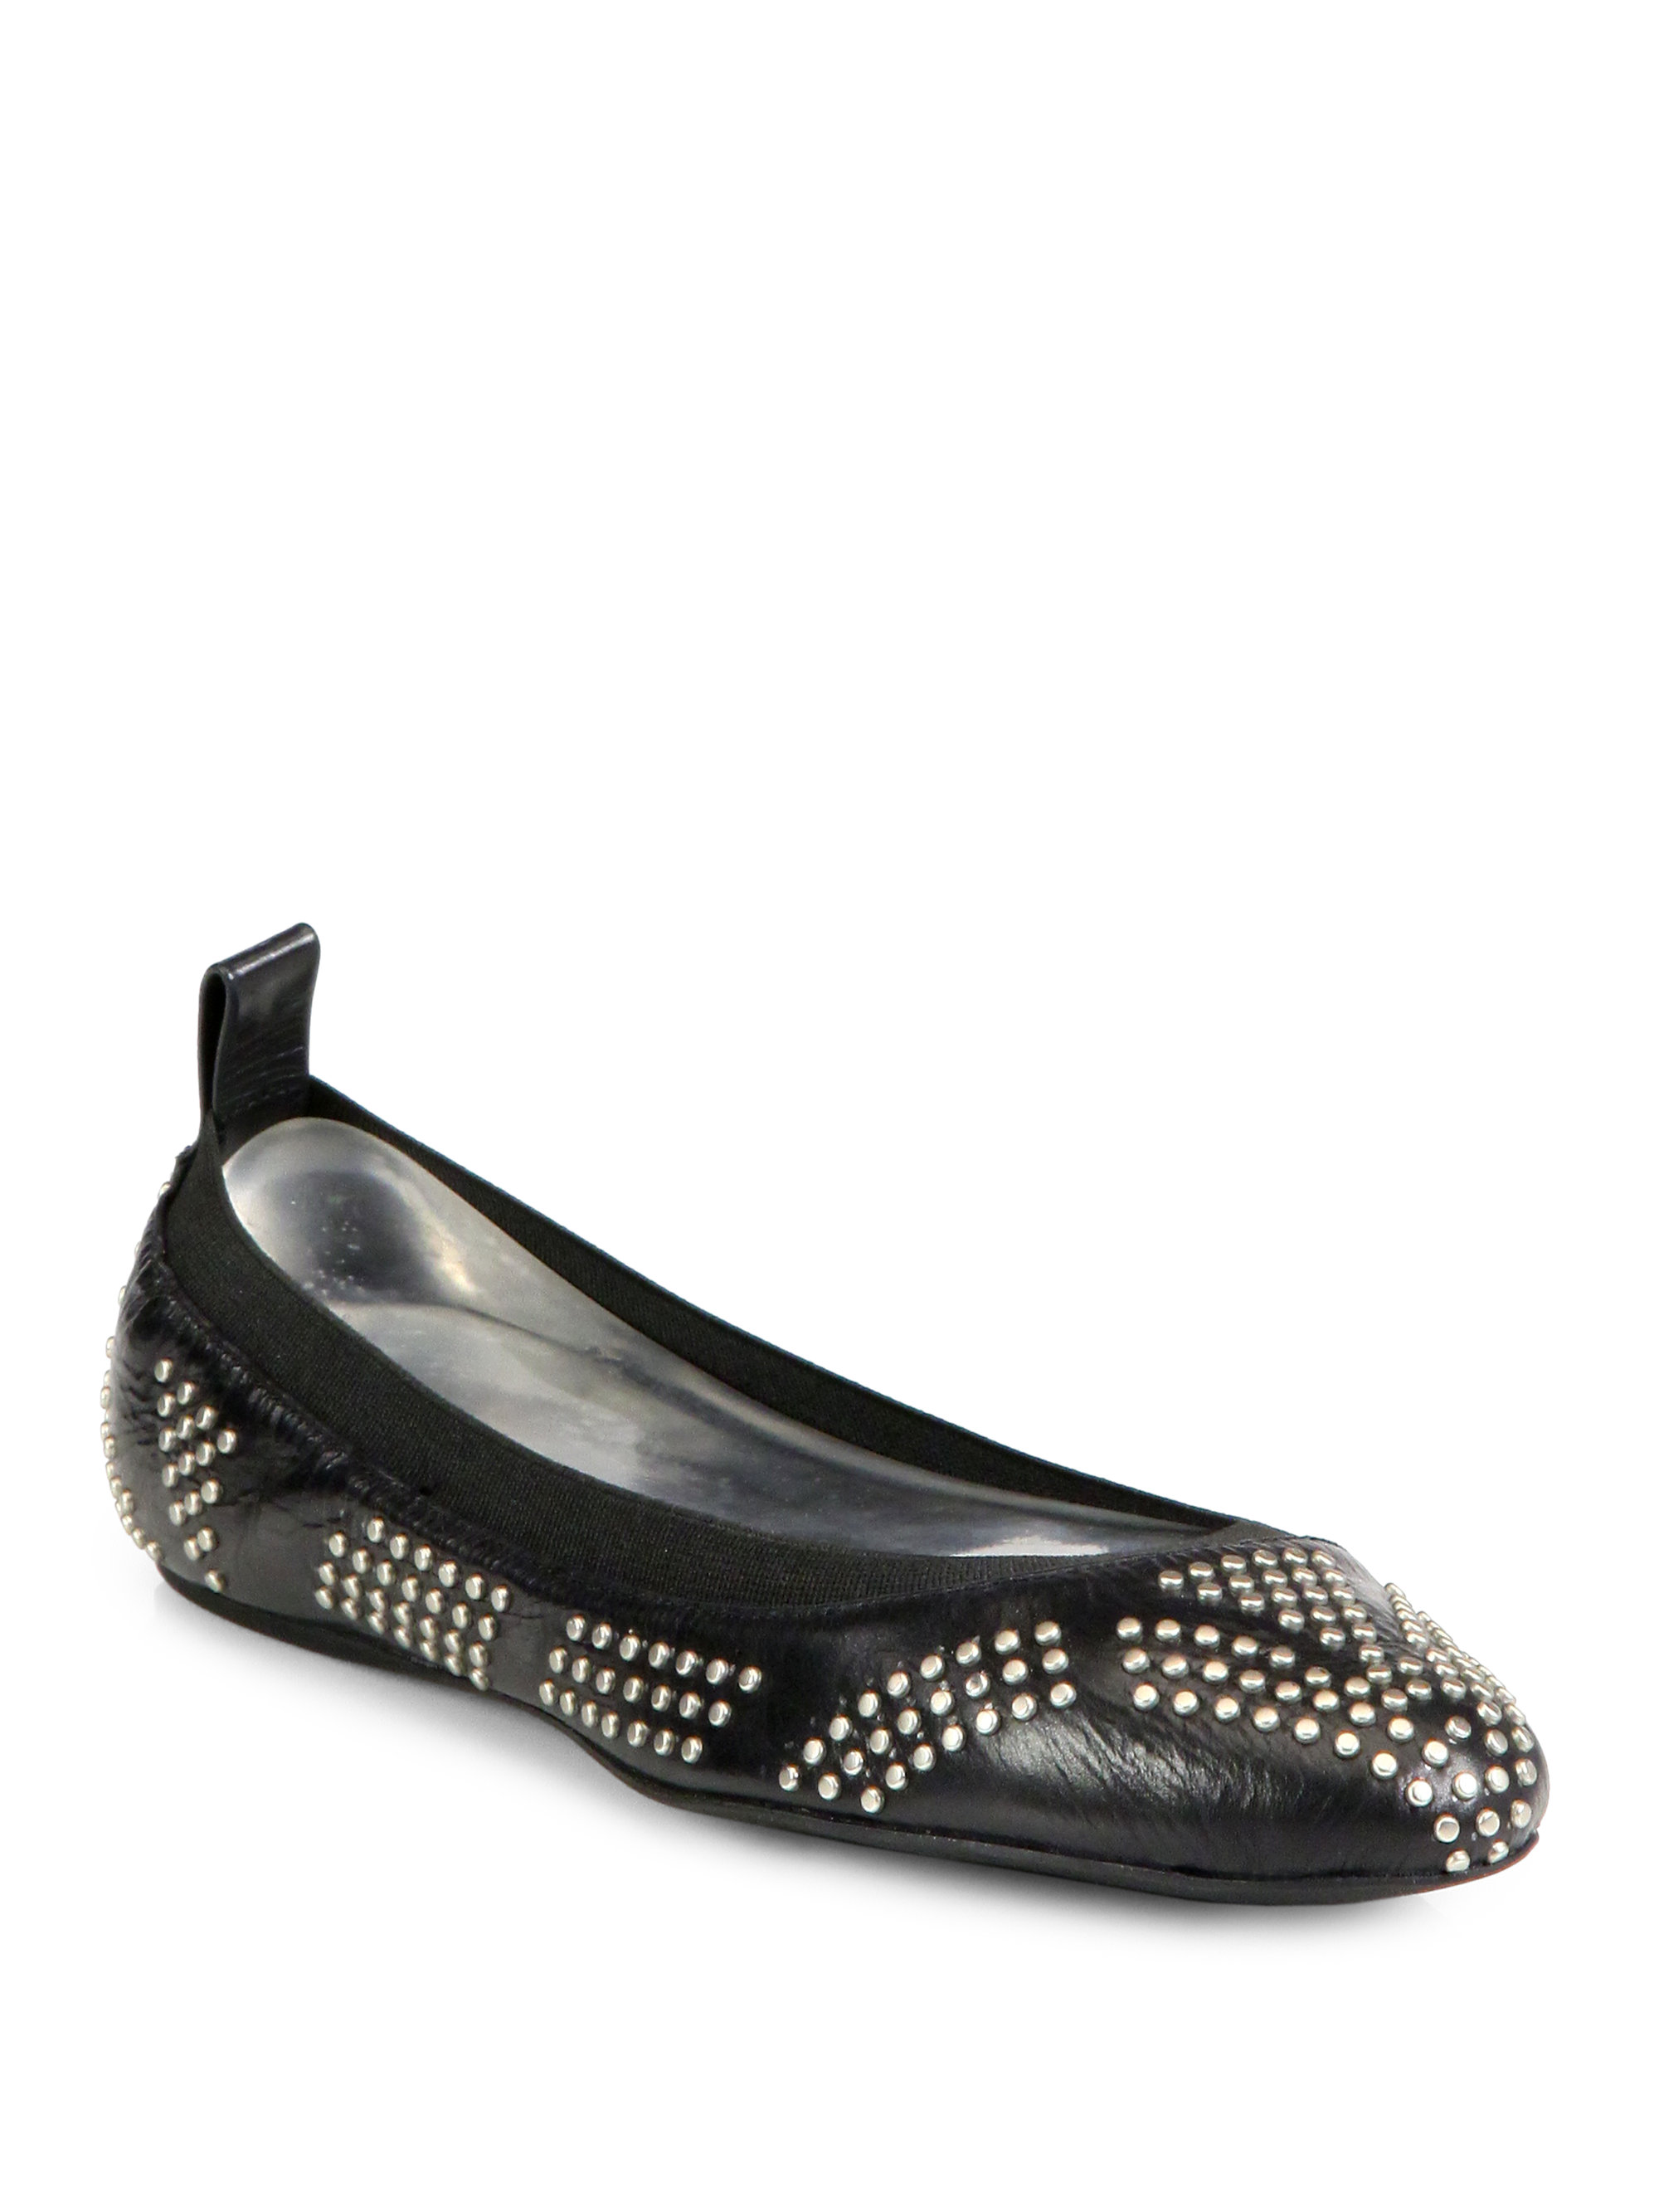 lyst see by chlo studded leather ballet flats in black. Black Bedroom Furniture Sets. Home Design Ideas